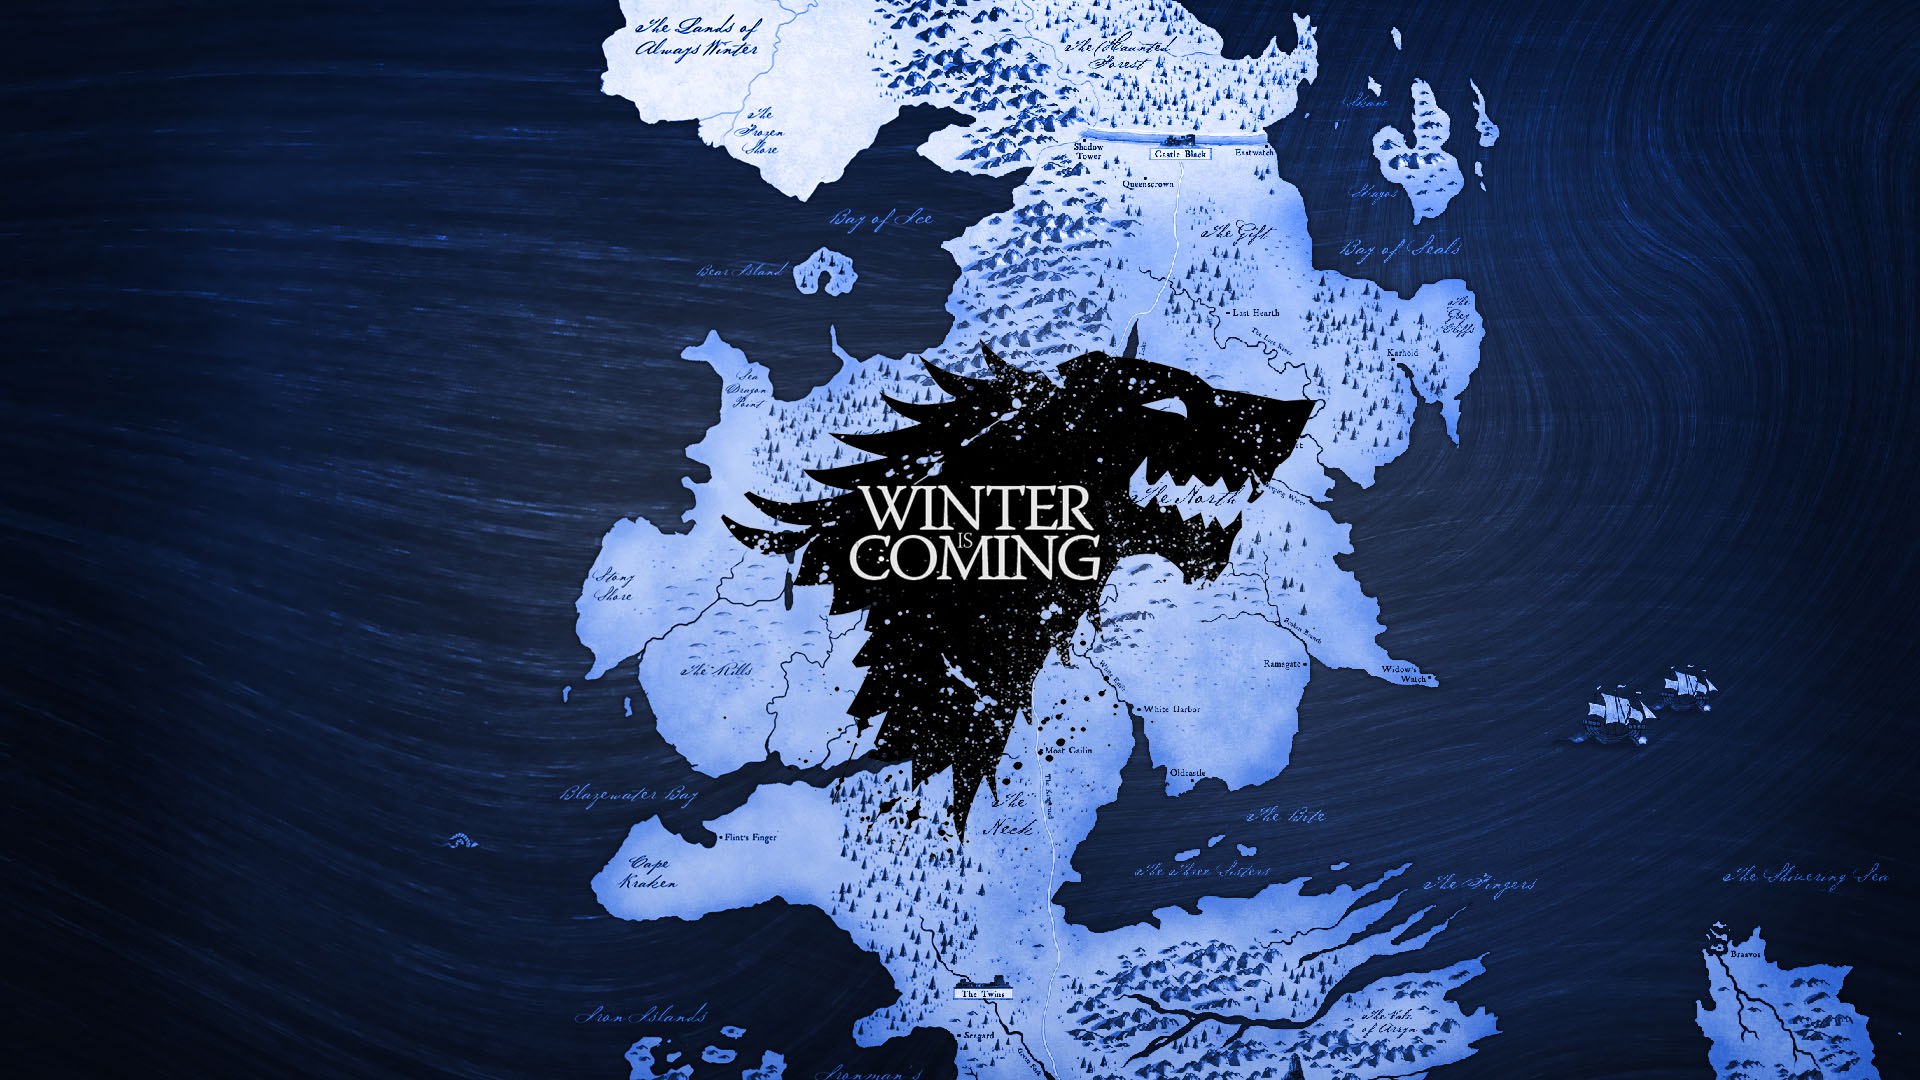 48 Winter Is Coming Iphone Wallpaper On Wallpapersafari